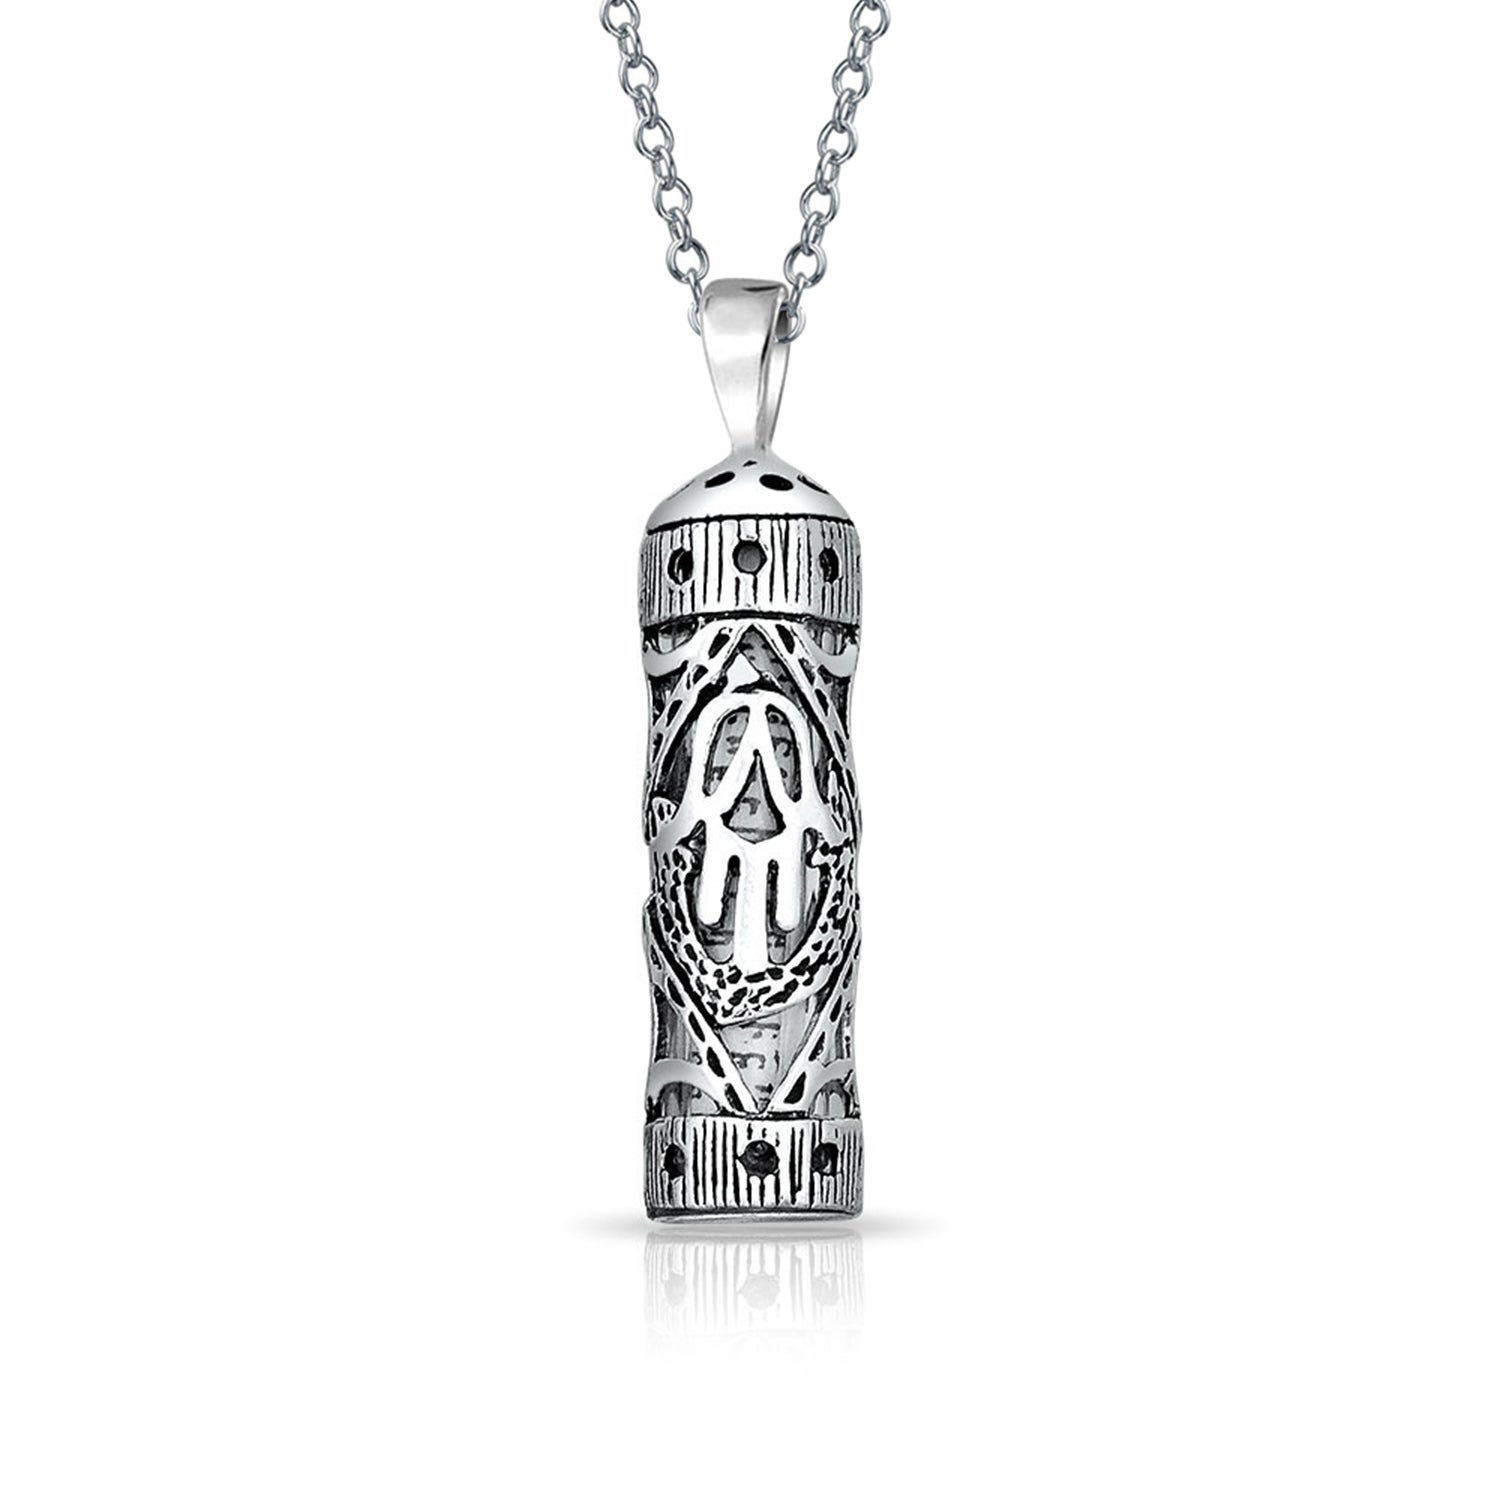 .925 Sterling Silver Mezuzah with Star and Hand of God Charm Pendant